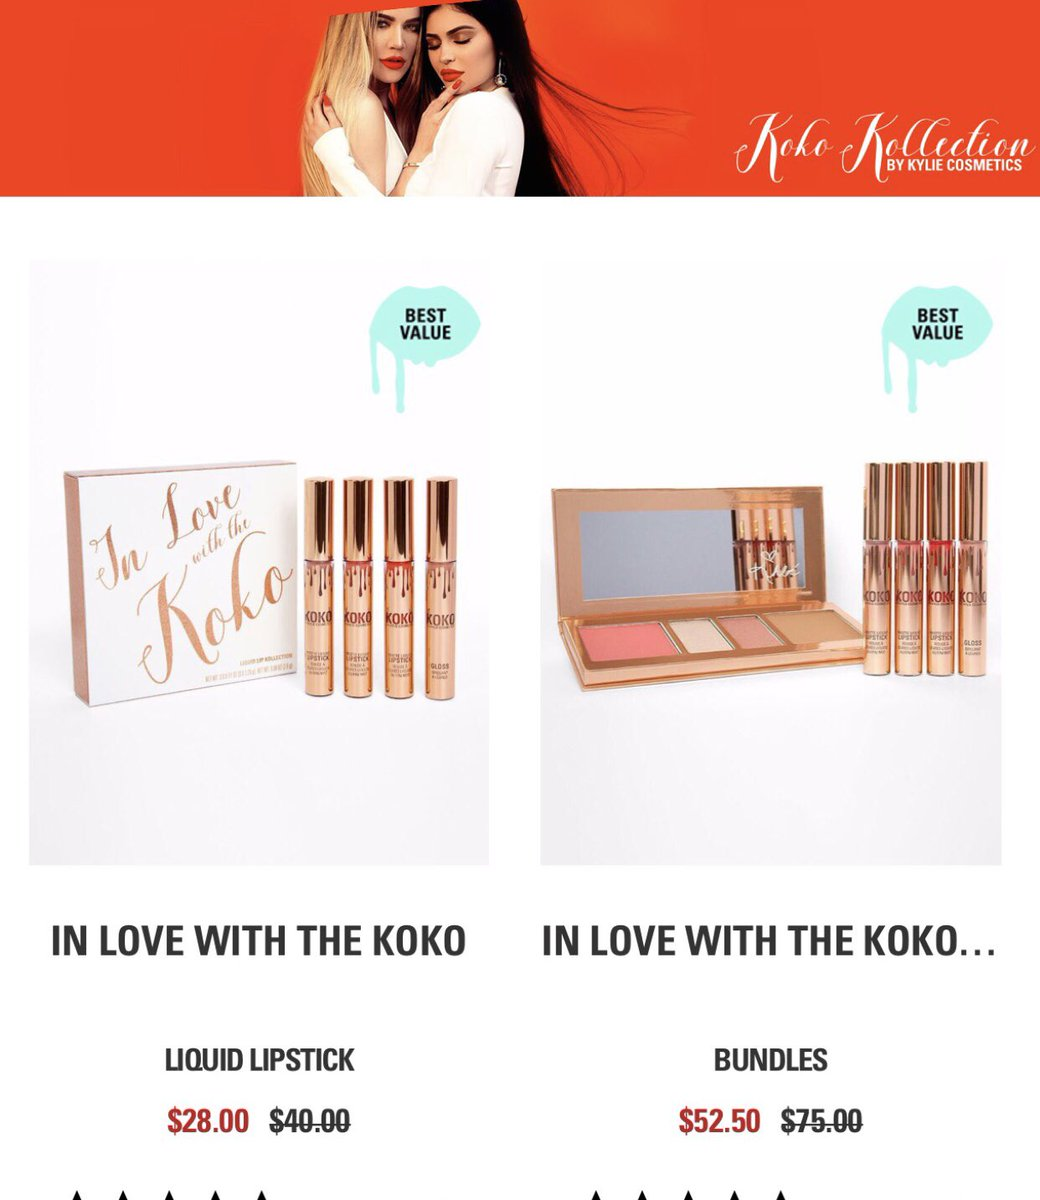 My Koko Kollection for @kyliecosmetics is on sale now!! 30% off in the #CyberMondal sale!! https://t.co/1CYPOujQXN https://t.co/WqU7R7N8pA